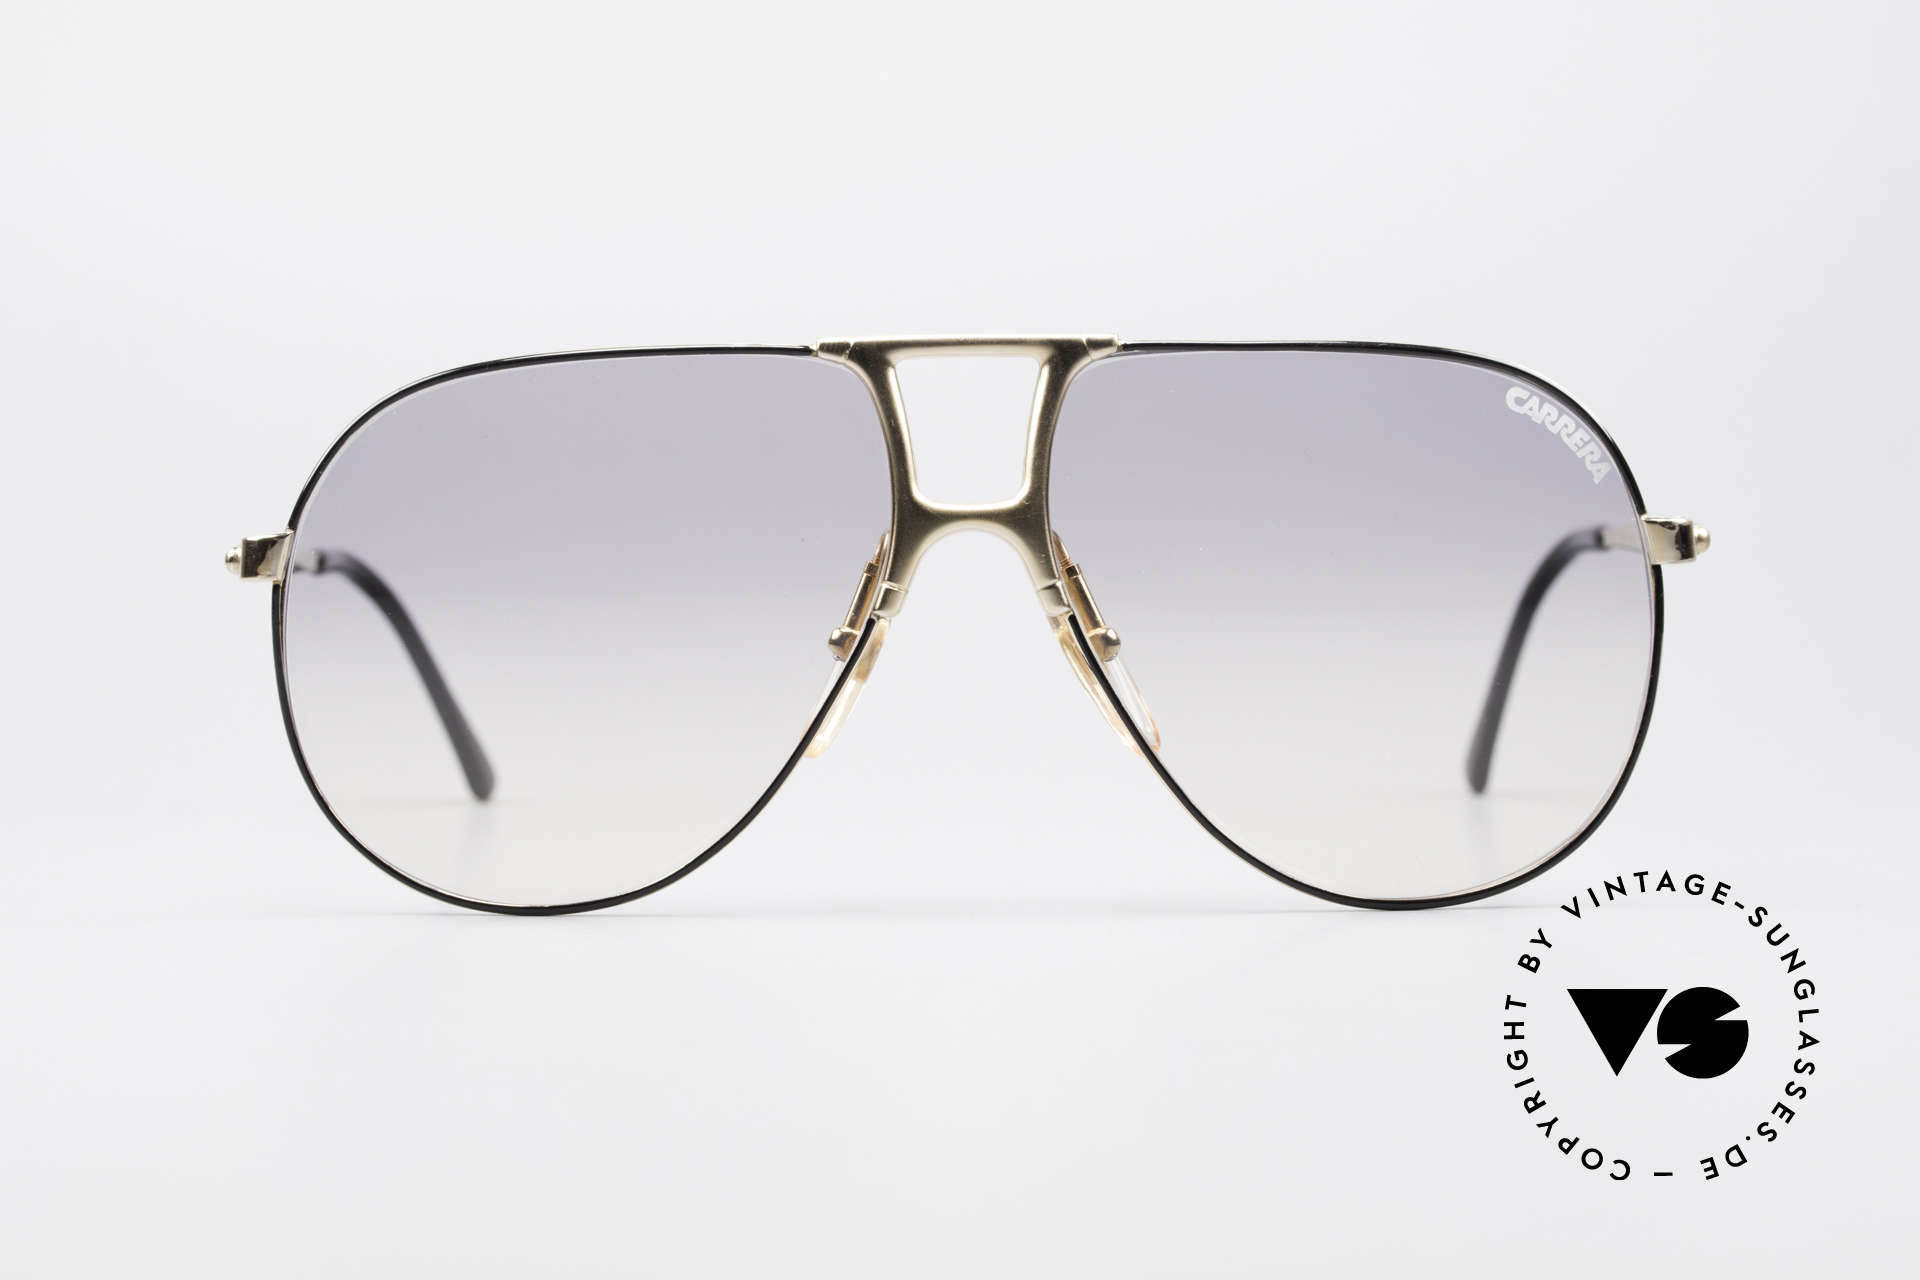 Boeing 5731 Large 80's Aviator Sunglasses, craftsmanship & design made to Boeing's specifications, Made for Men